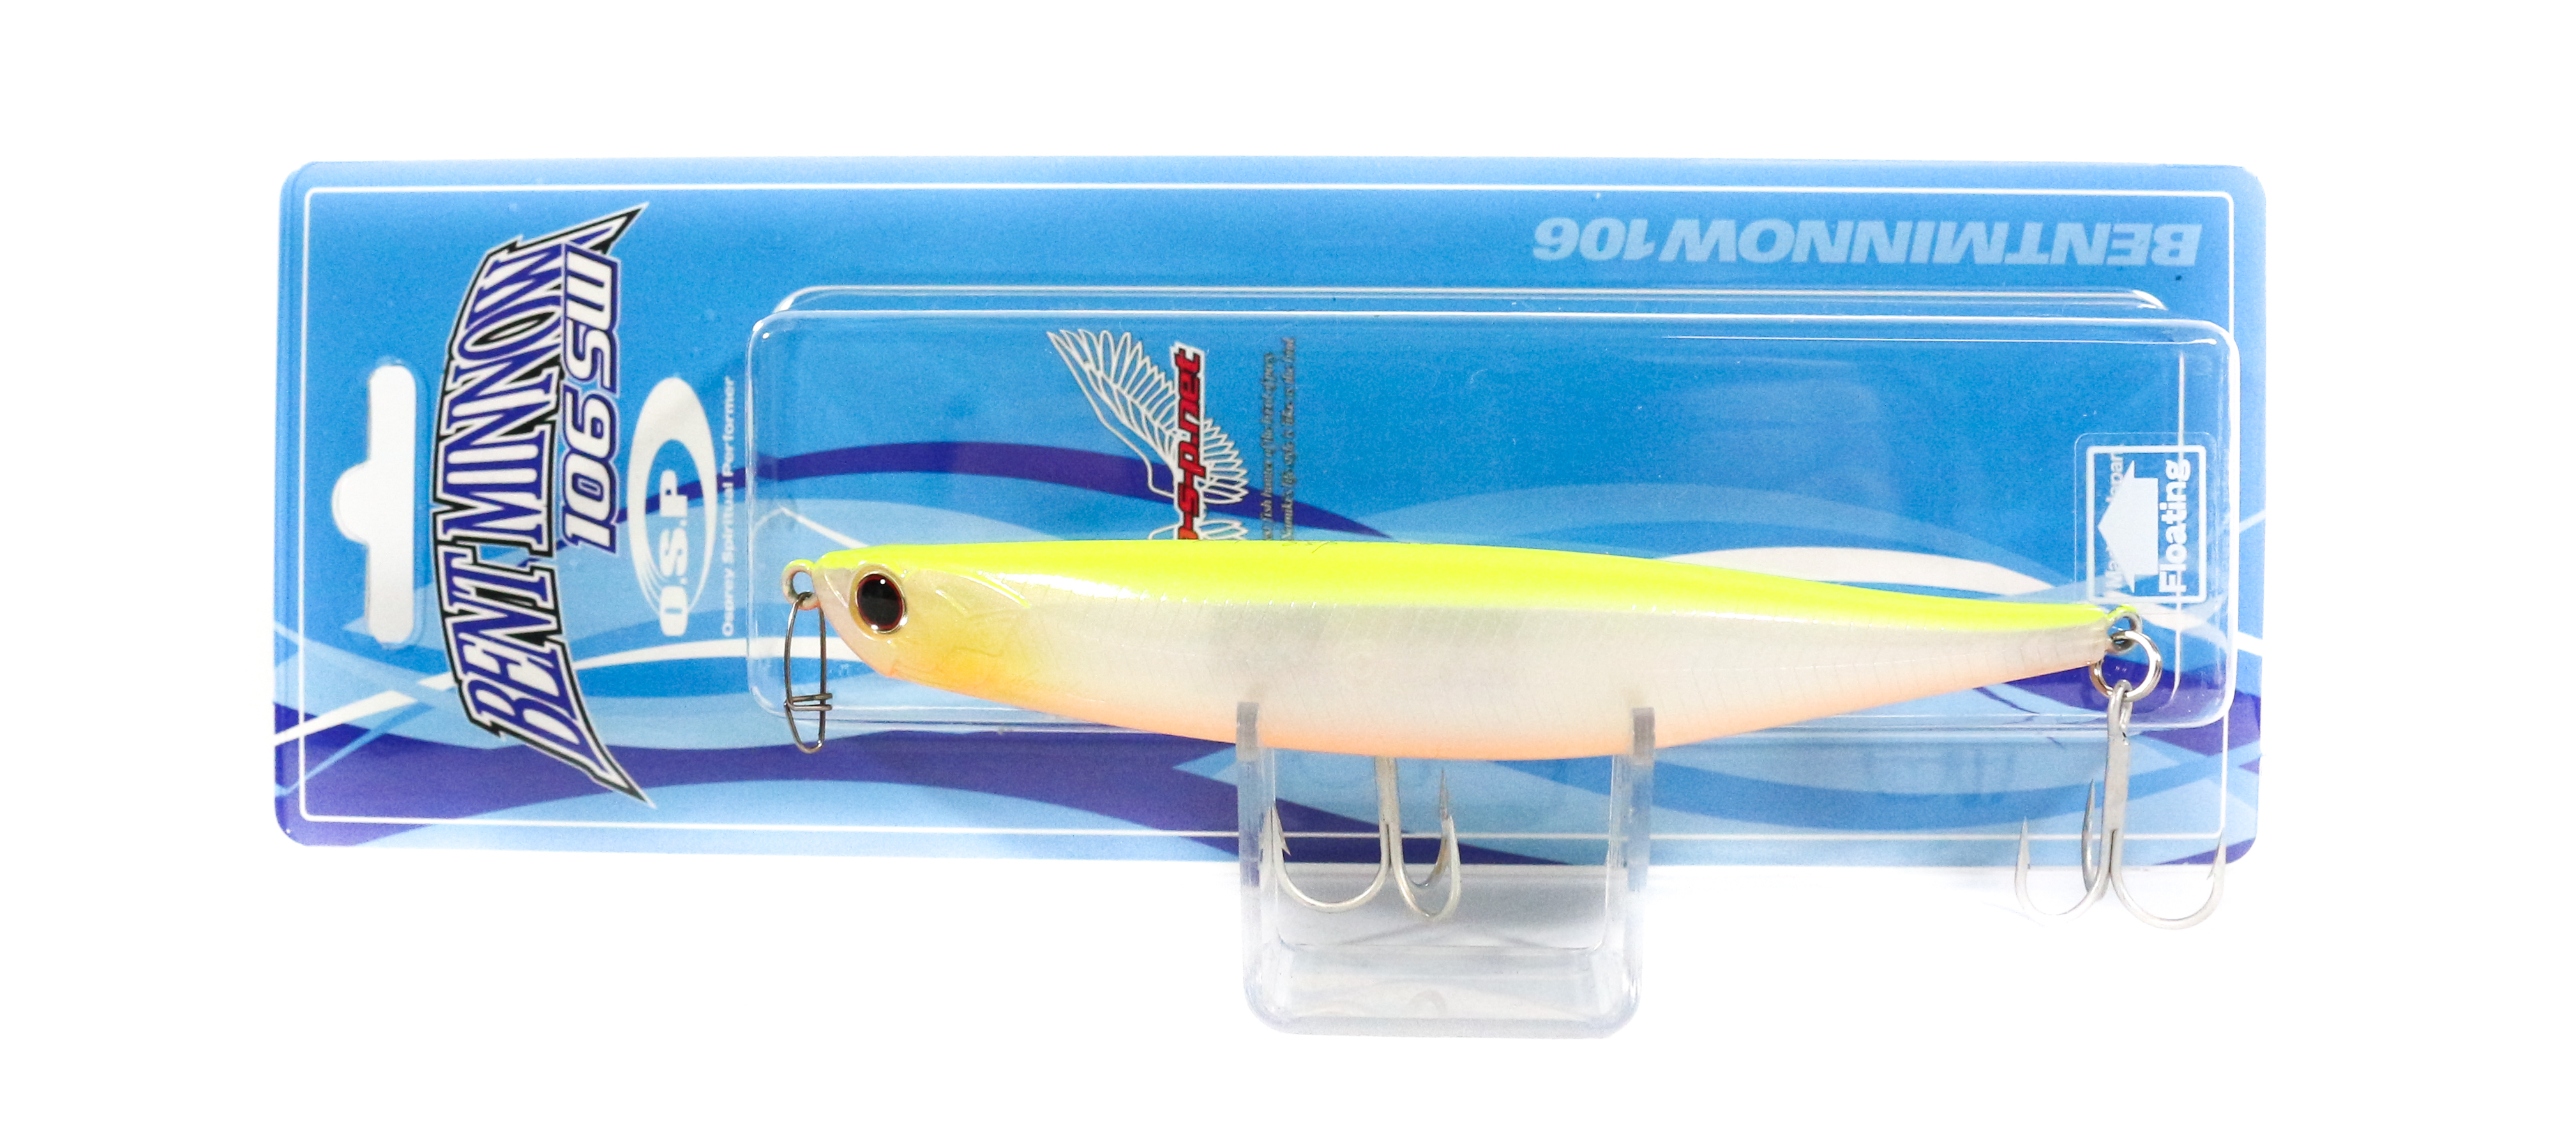 OSP Bent Minnow 106F SW Floating Minnow Lure P-64 (1337)